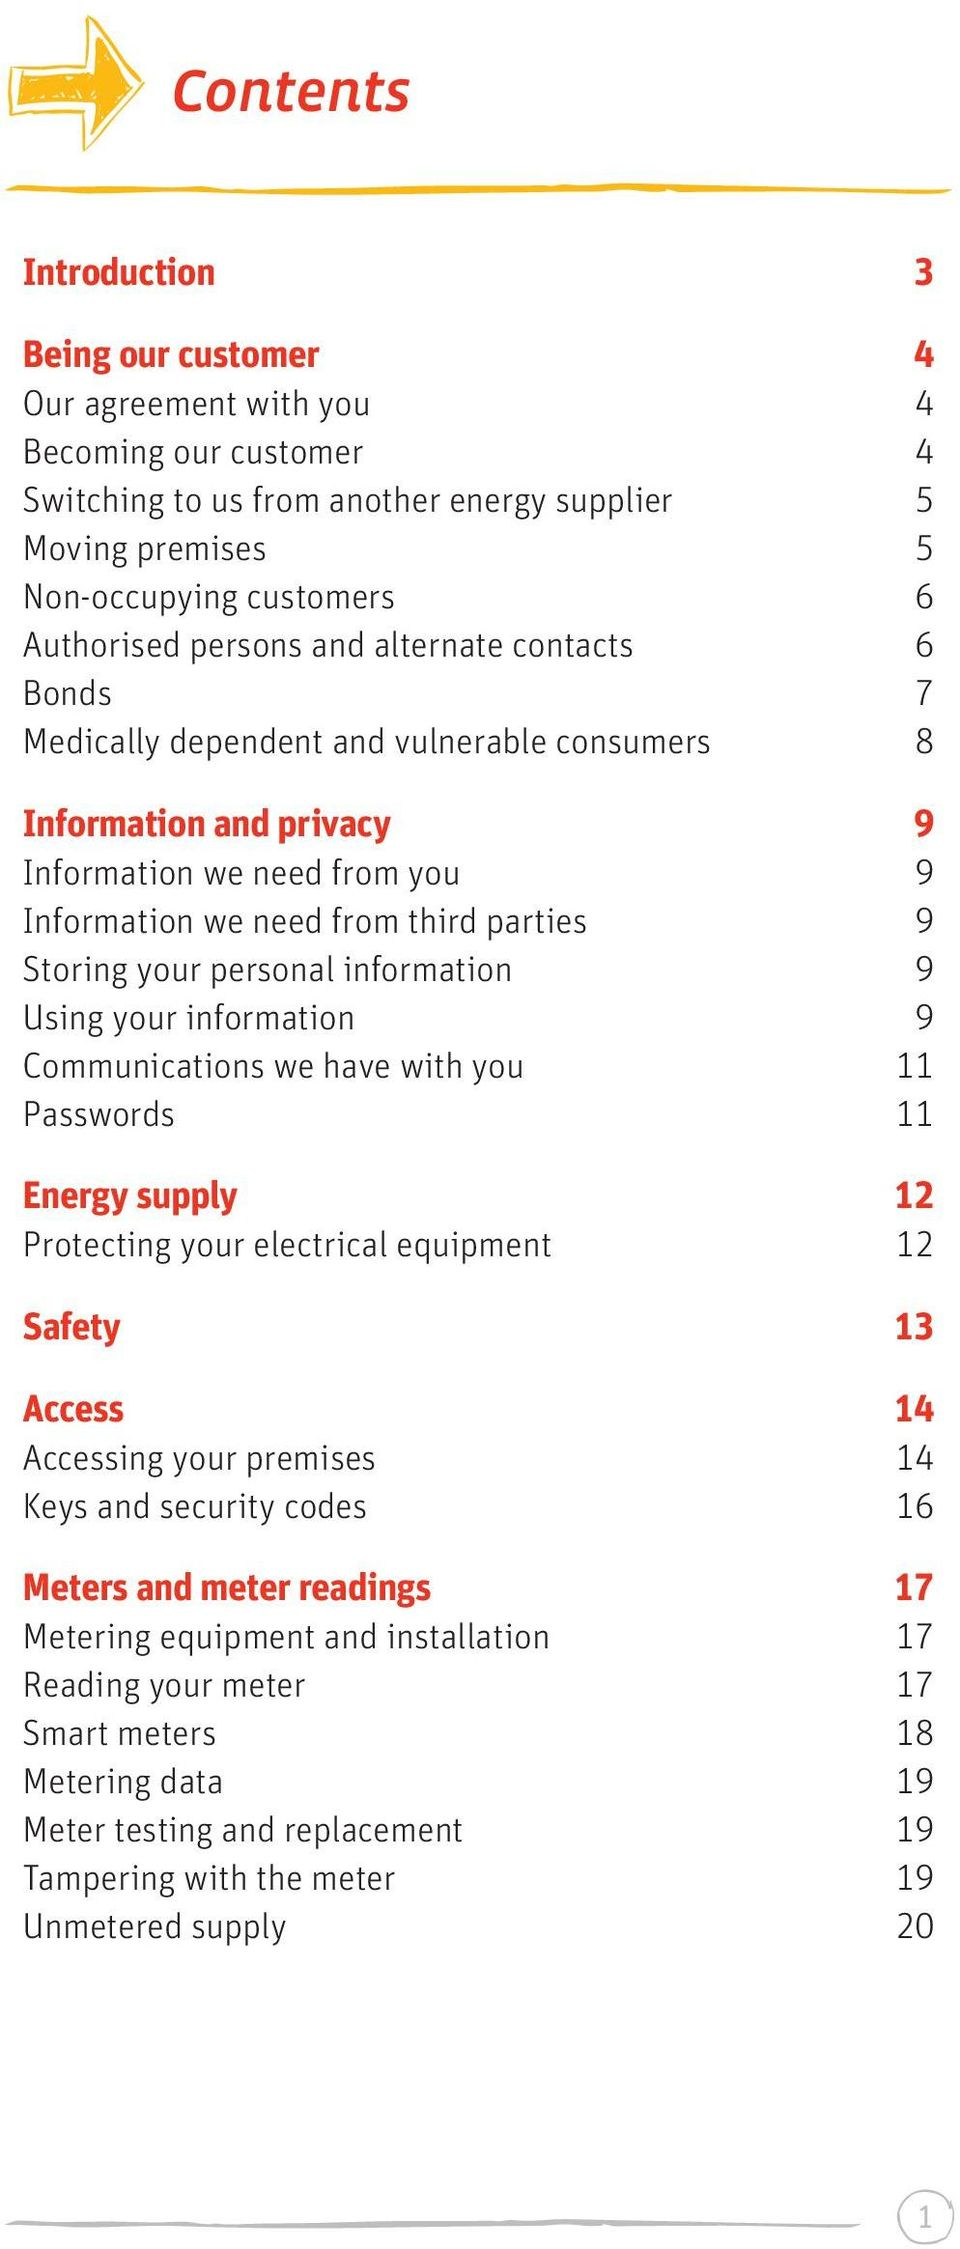 personal information 9 Using your information 9 Communications we have with you 11 Passwords 11 Energy supply 12 Protecting your electrical equipment 12 Safety 13 Access 14 Accessing your premises 14